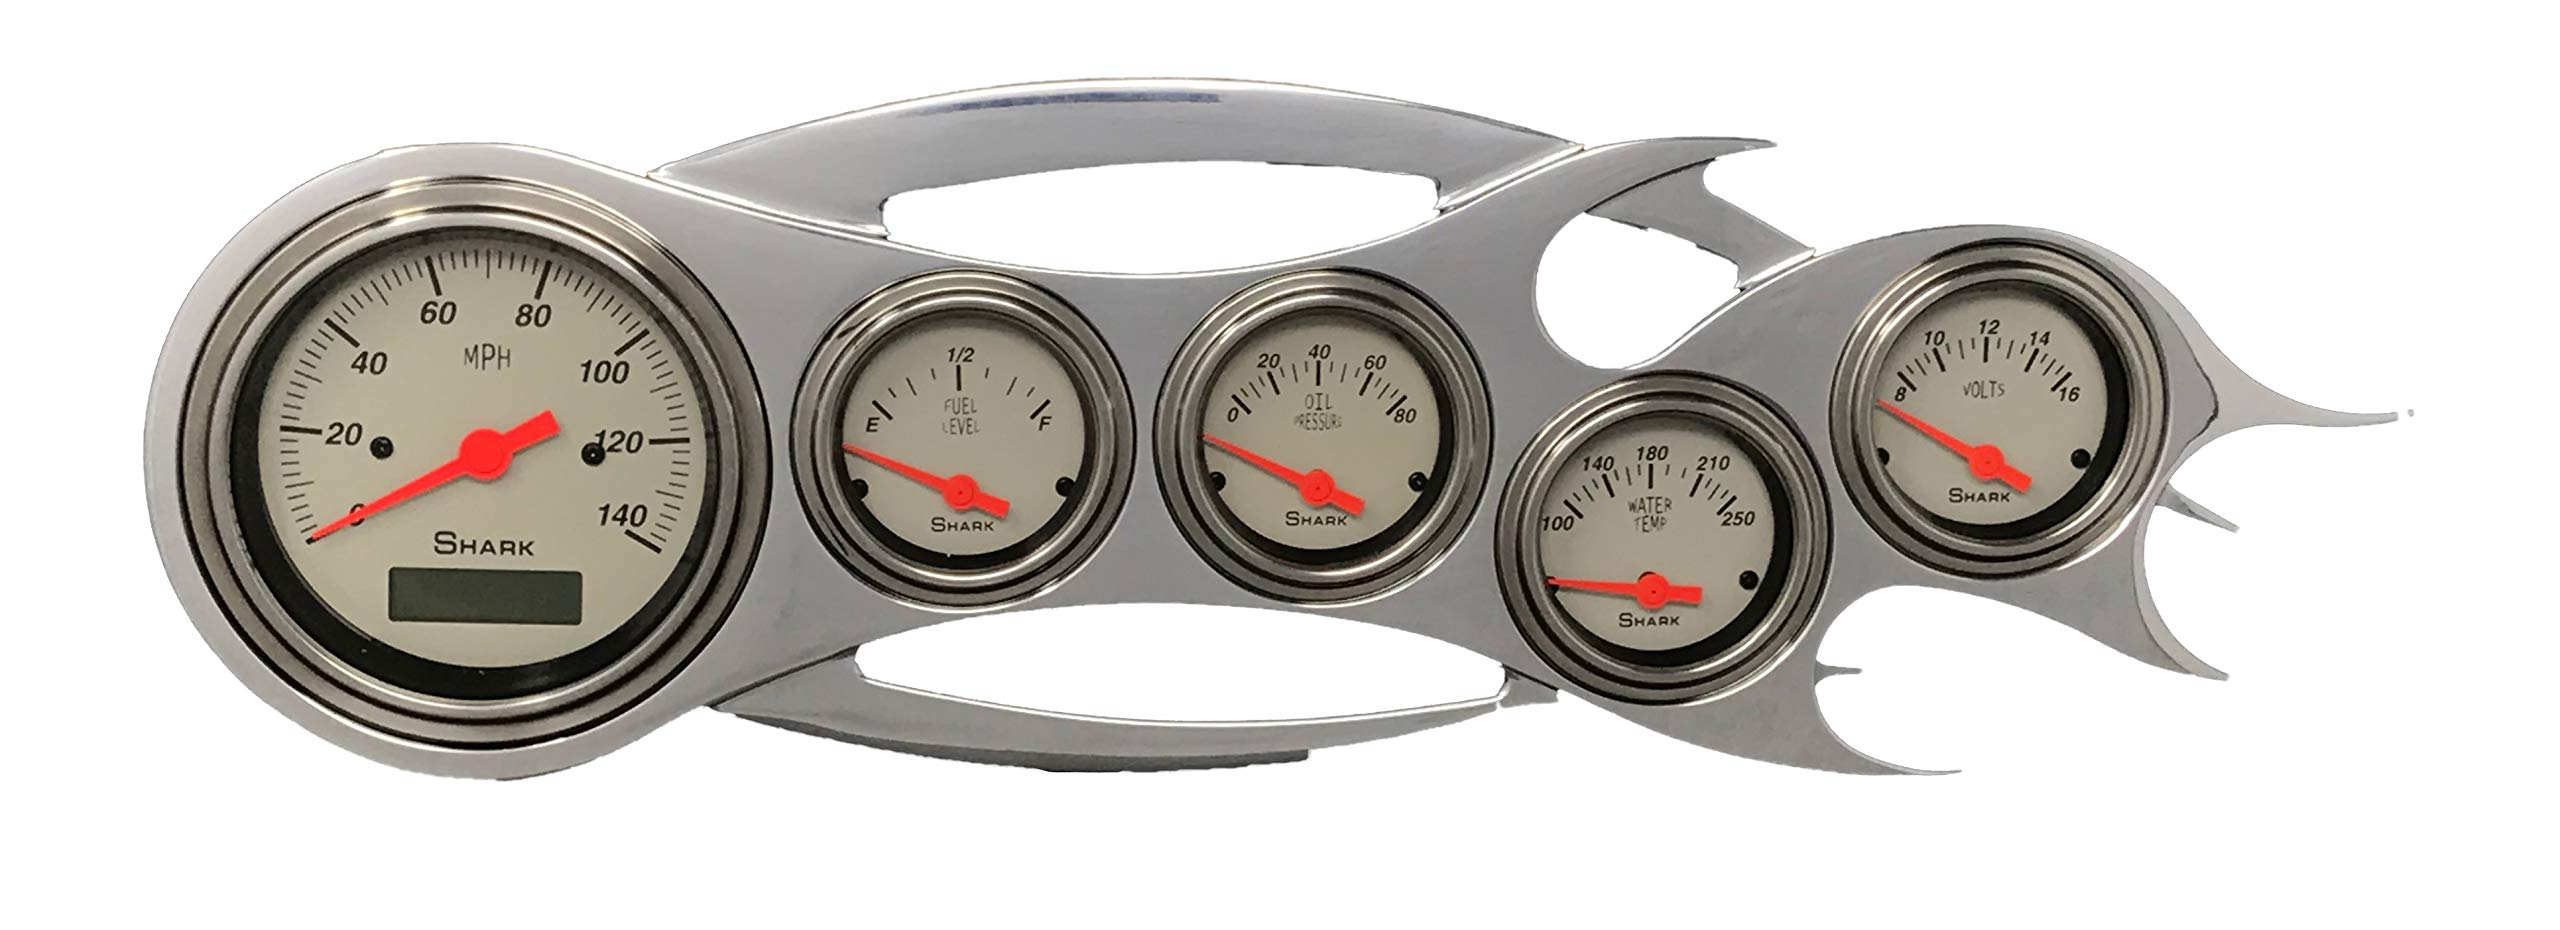 Universal Flame - 5 Gauge Dash Cluster Panel - Programmable Shark by Dolphin Gauges